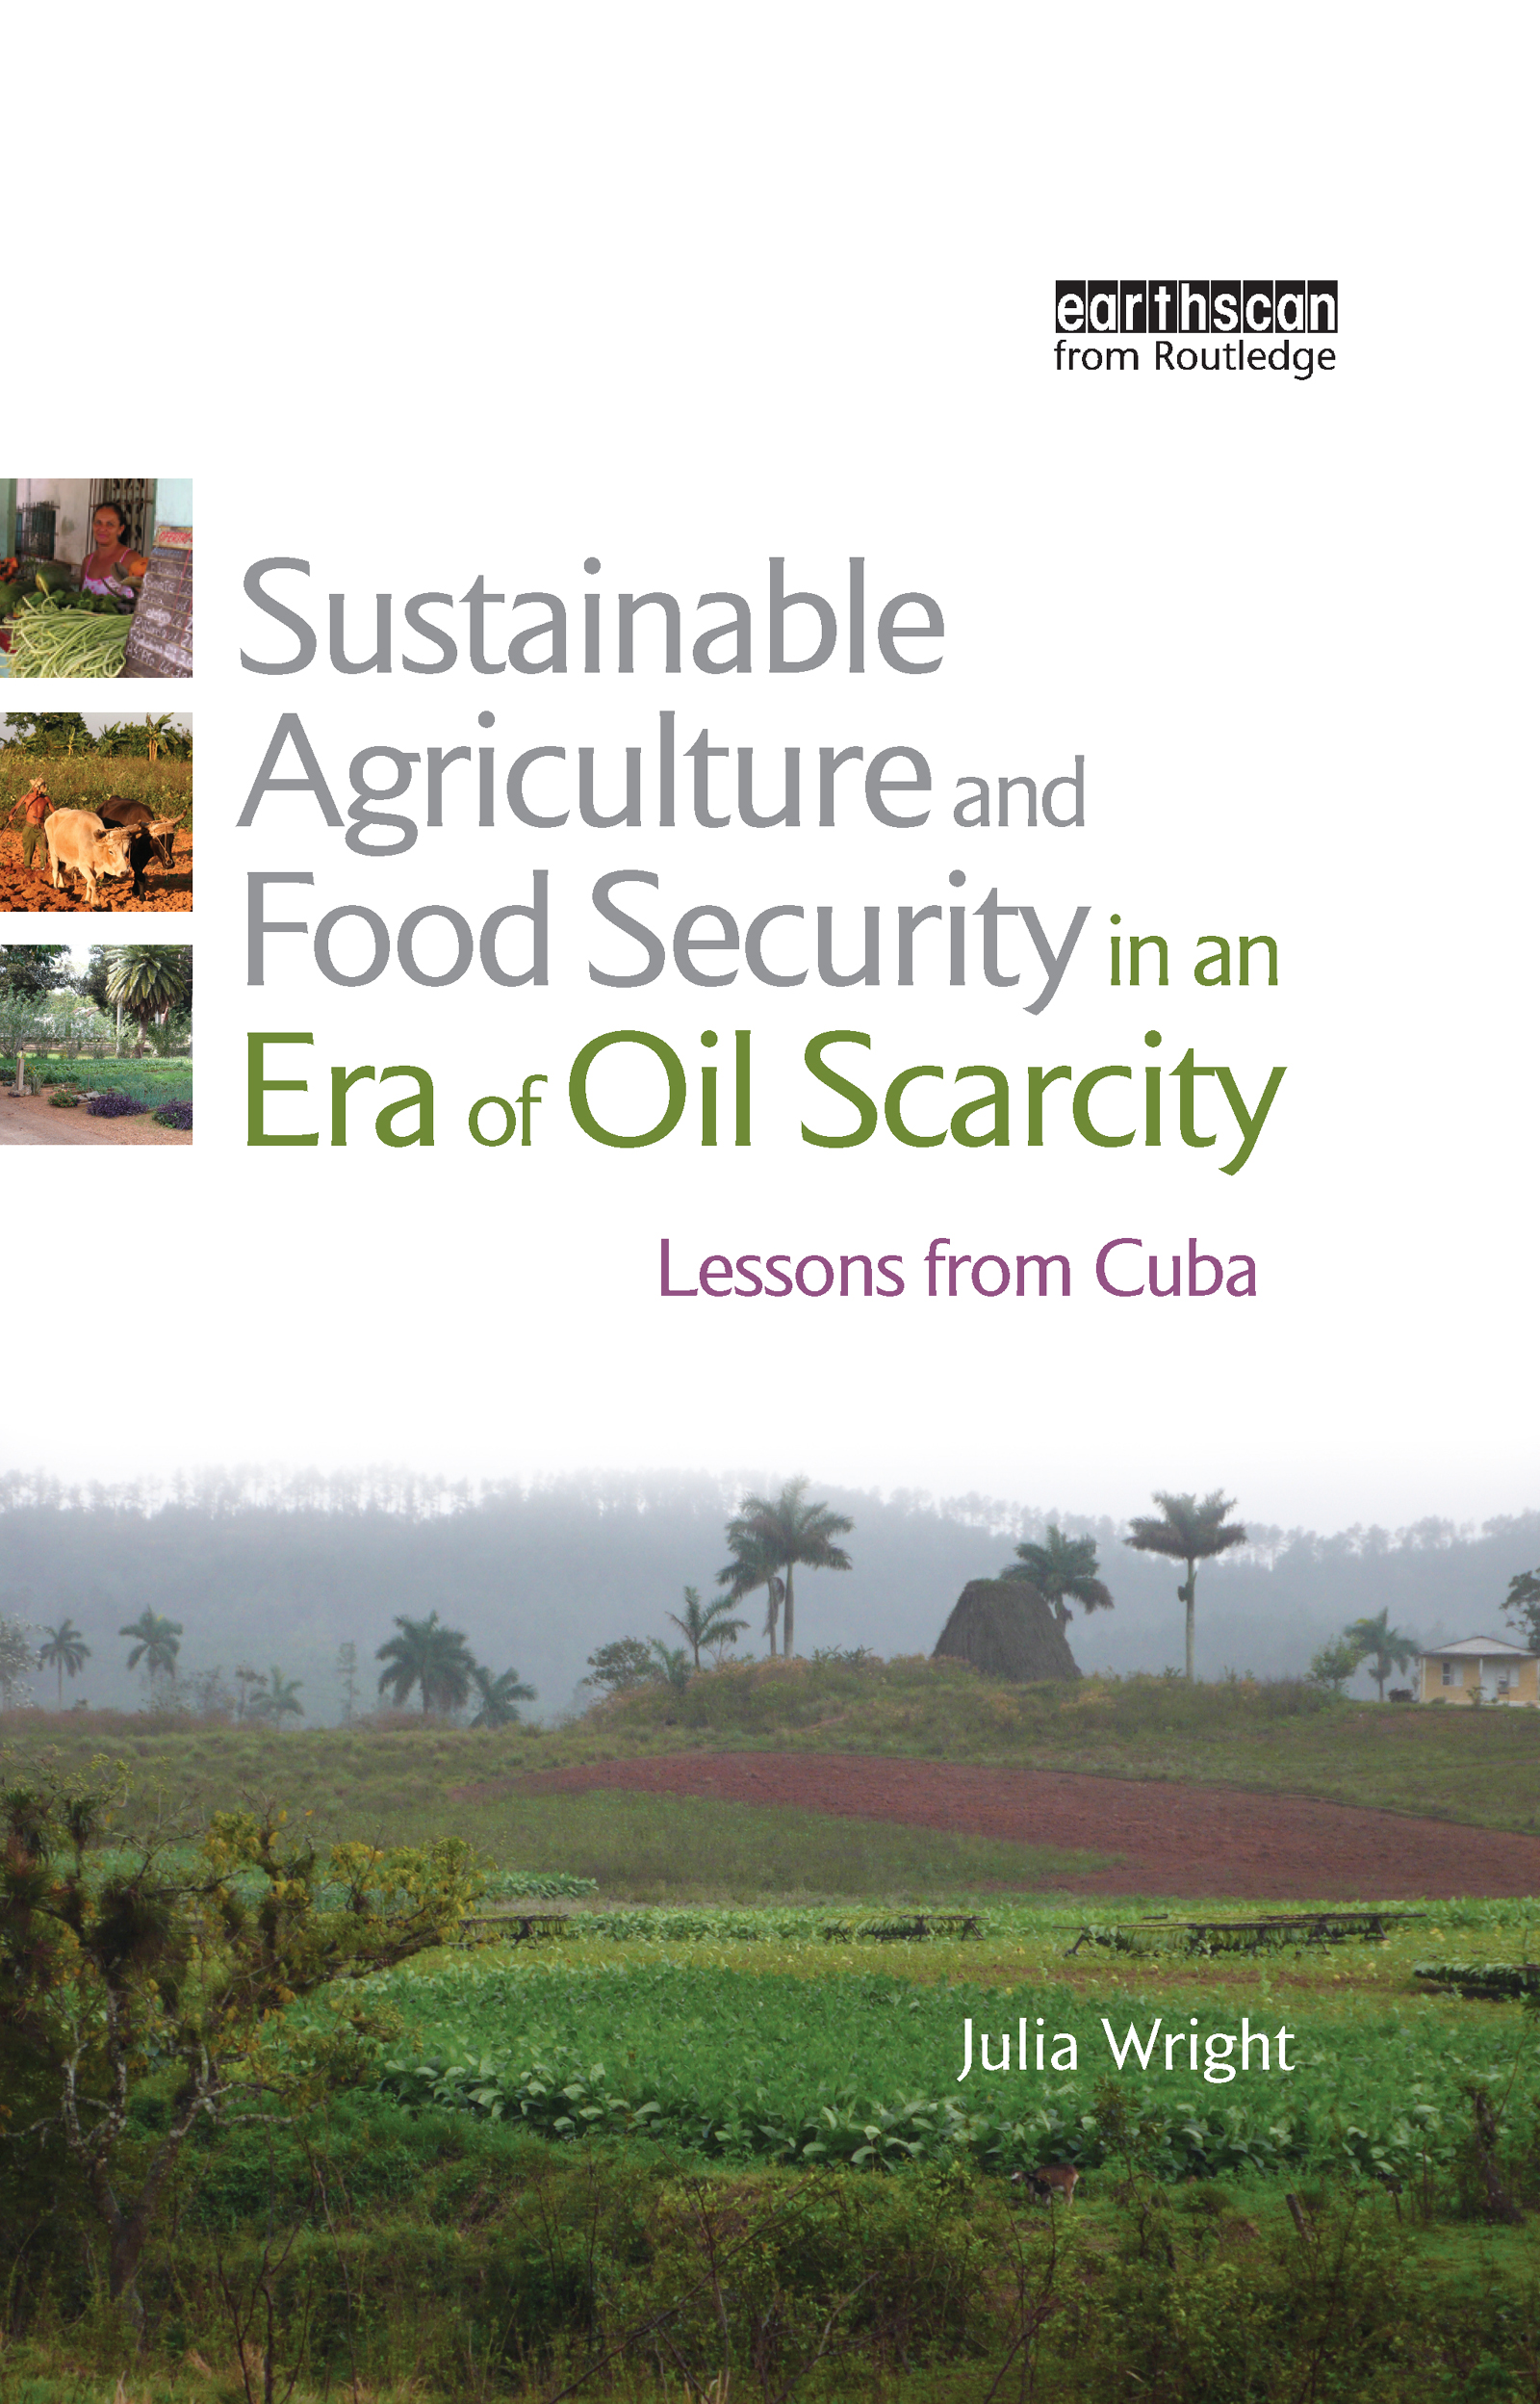 Sustainable Agriculture and Food Security in an Era of Oil Scarcity: Lessons from Cuba book cover